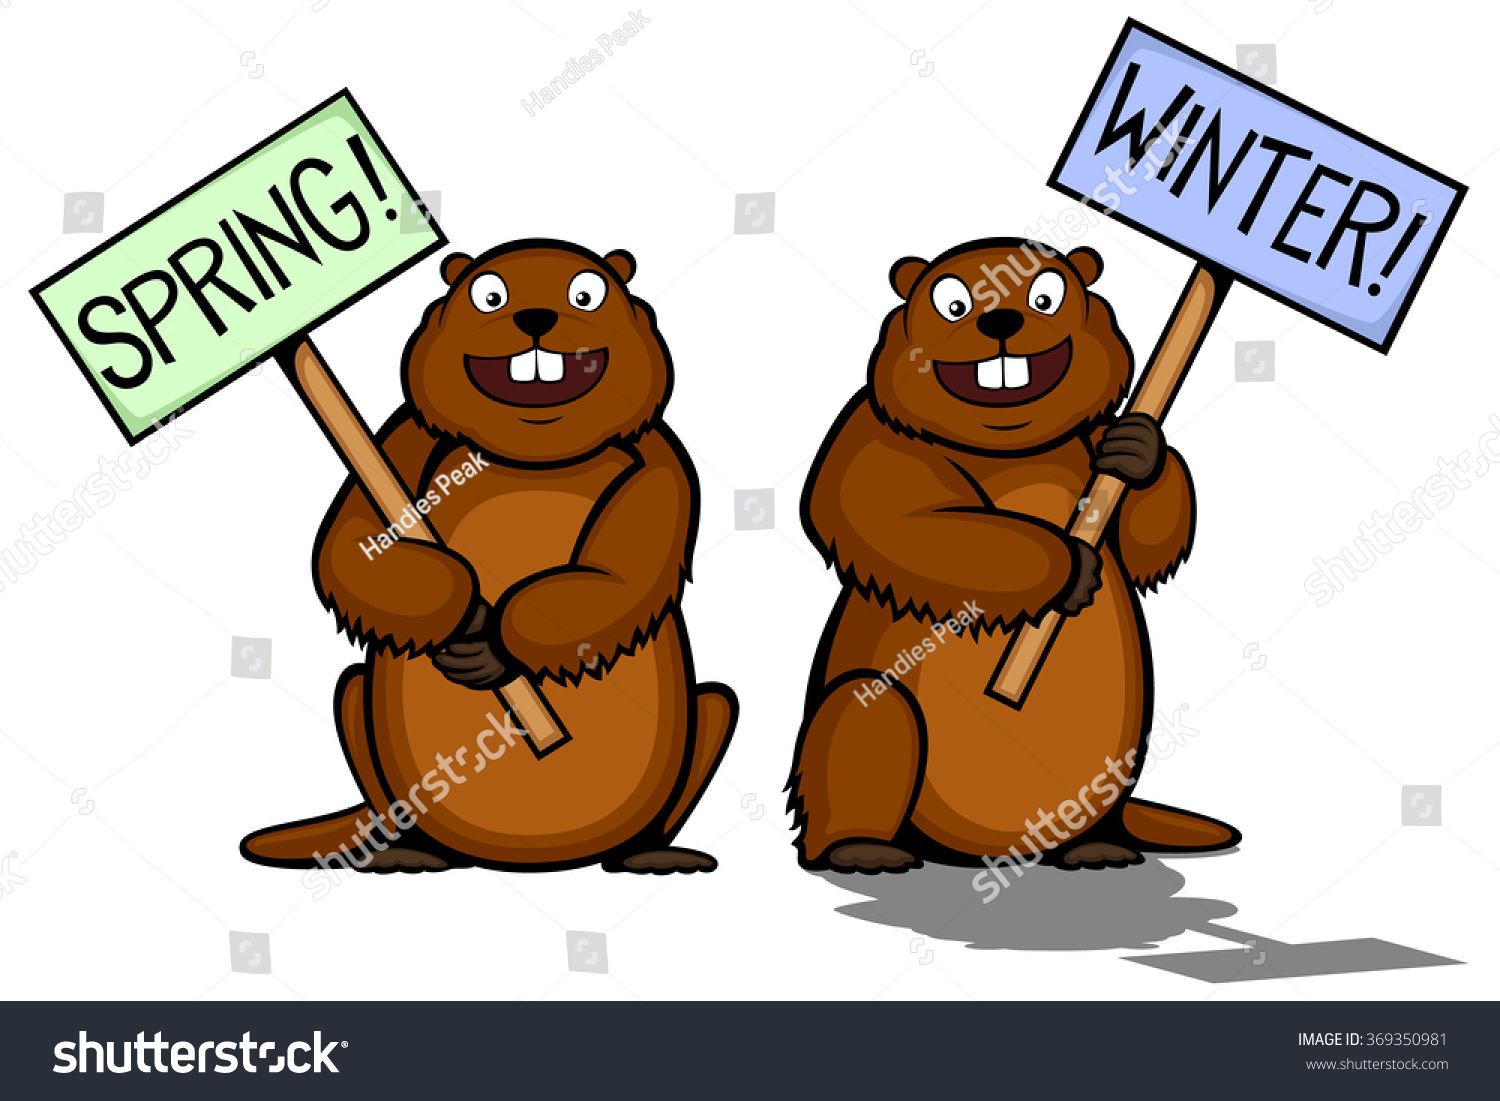 Groundhog shadow clipart 5 » Clipart Station.